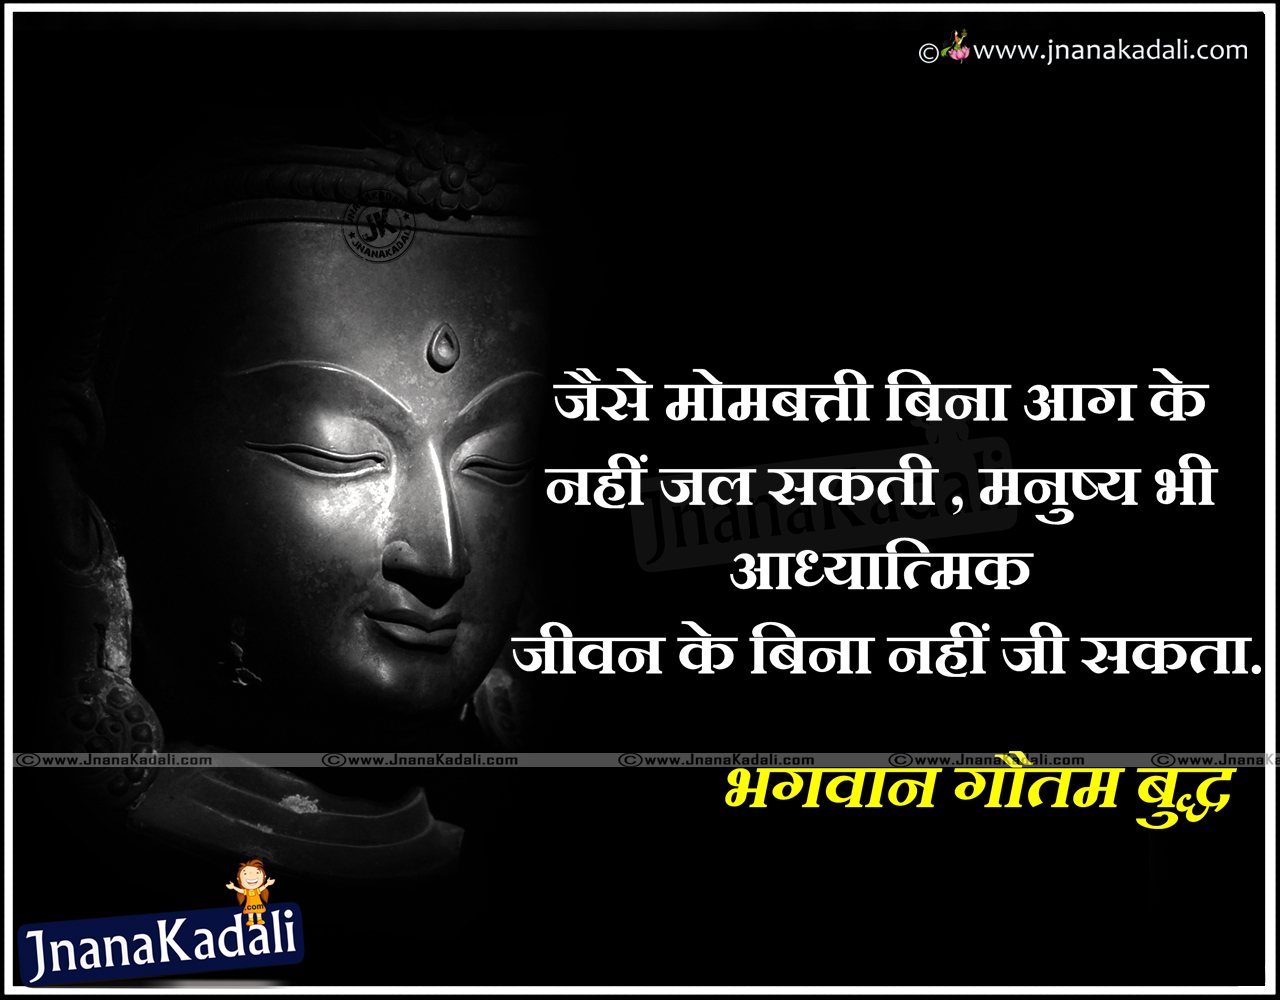 gautama buddha hindi best sayings images jnana kadali